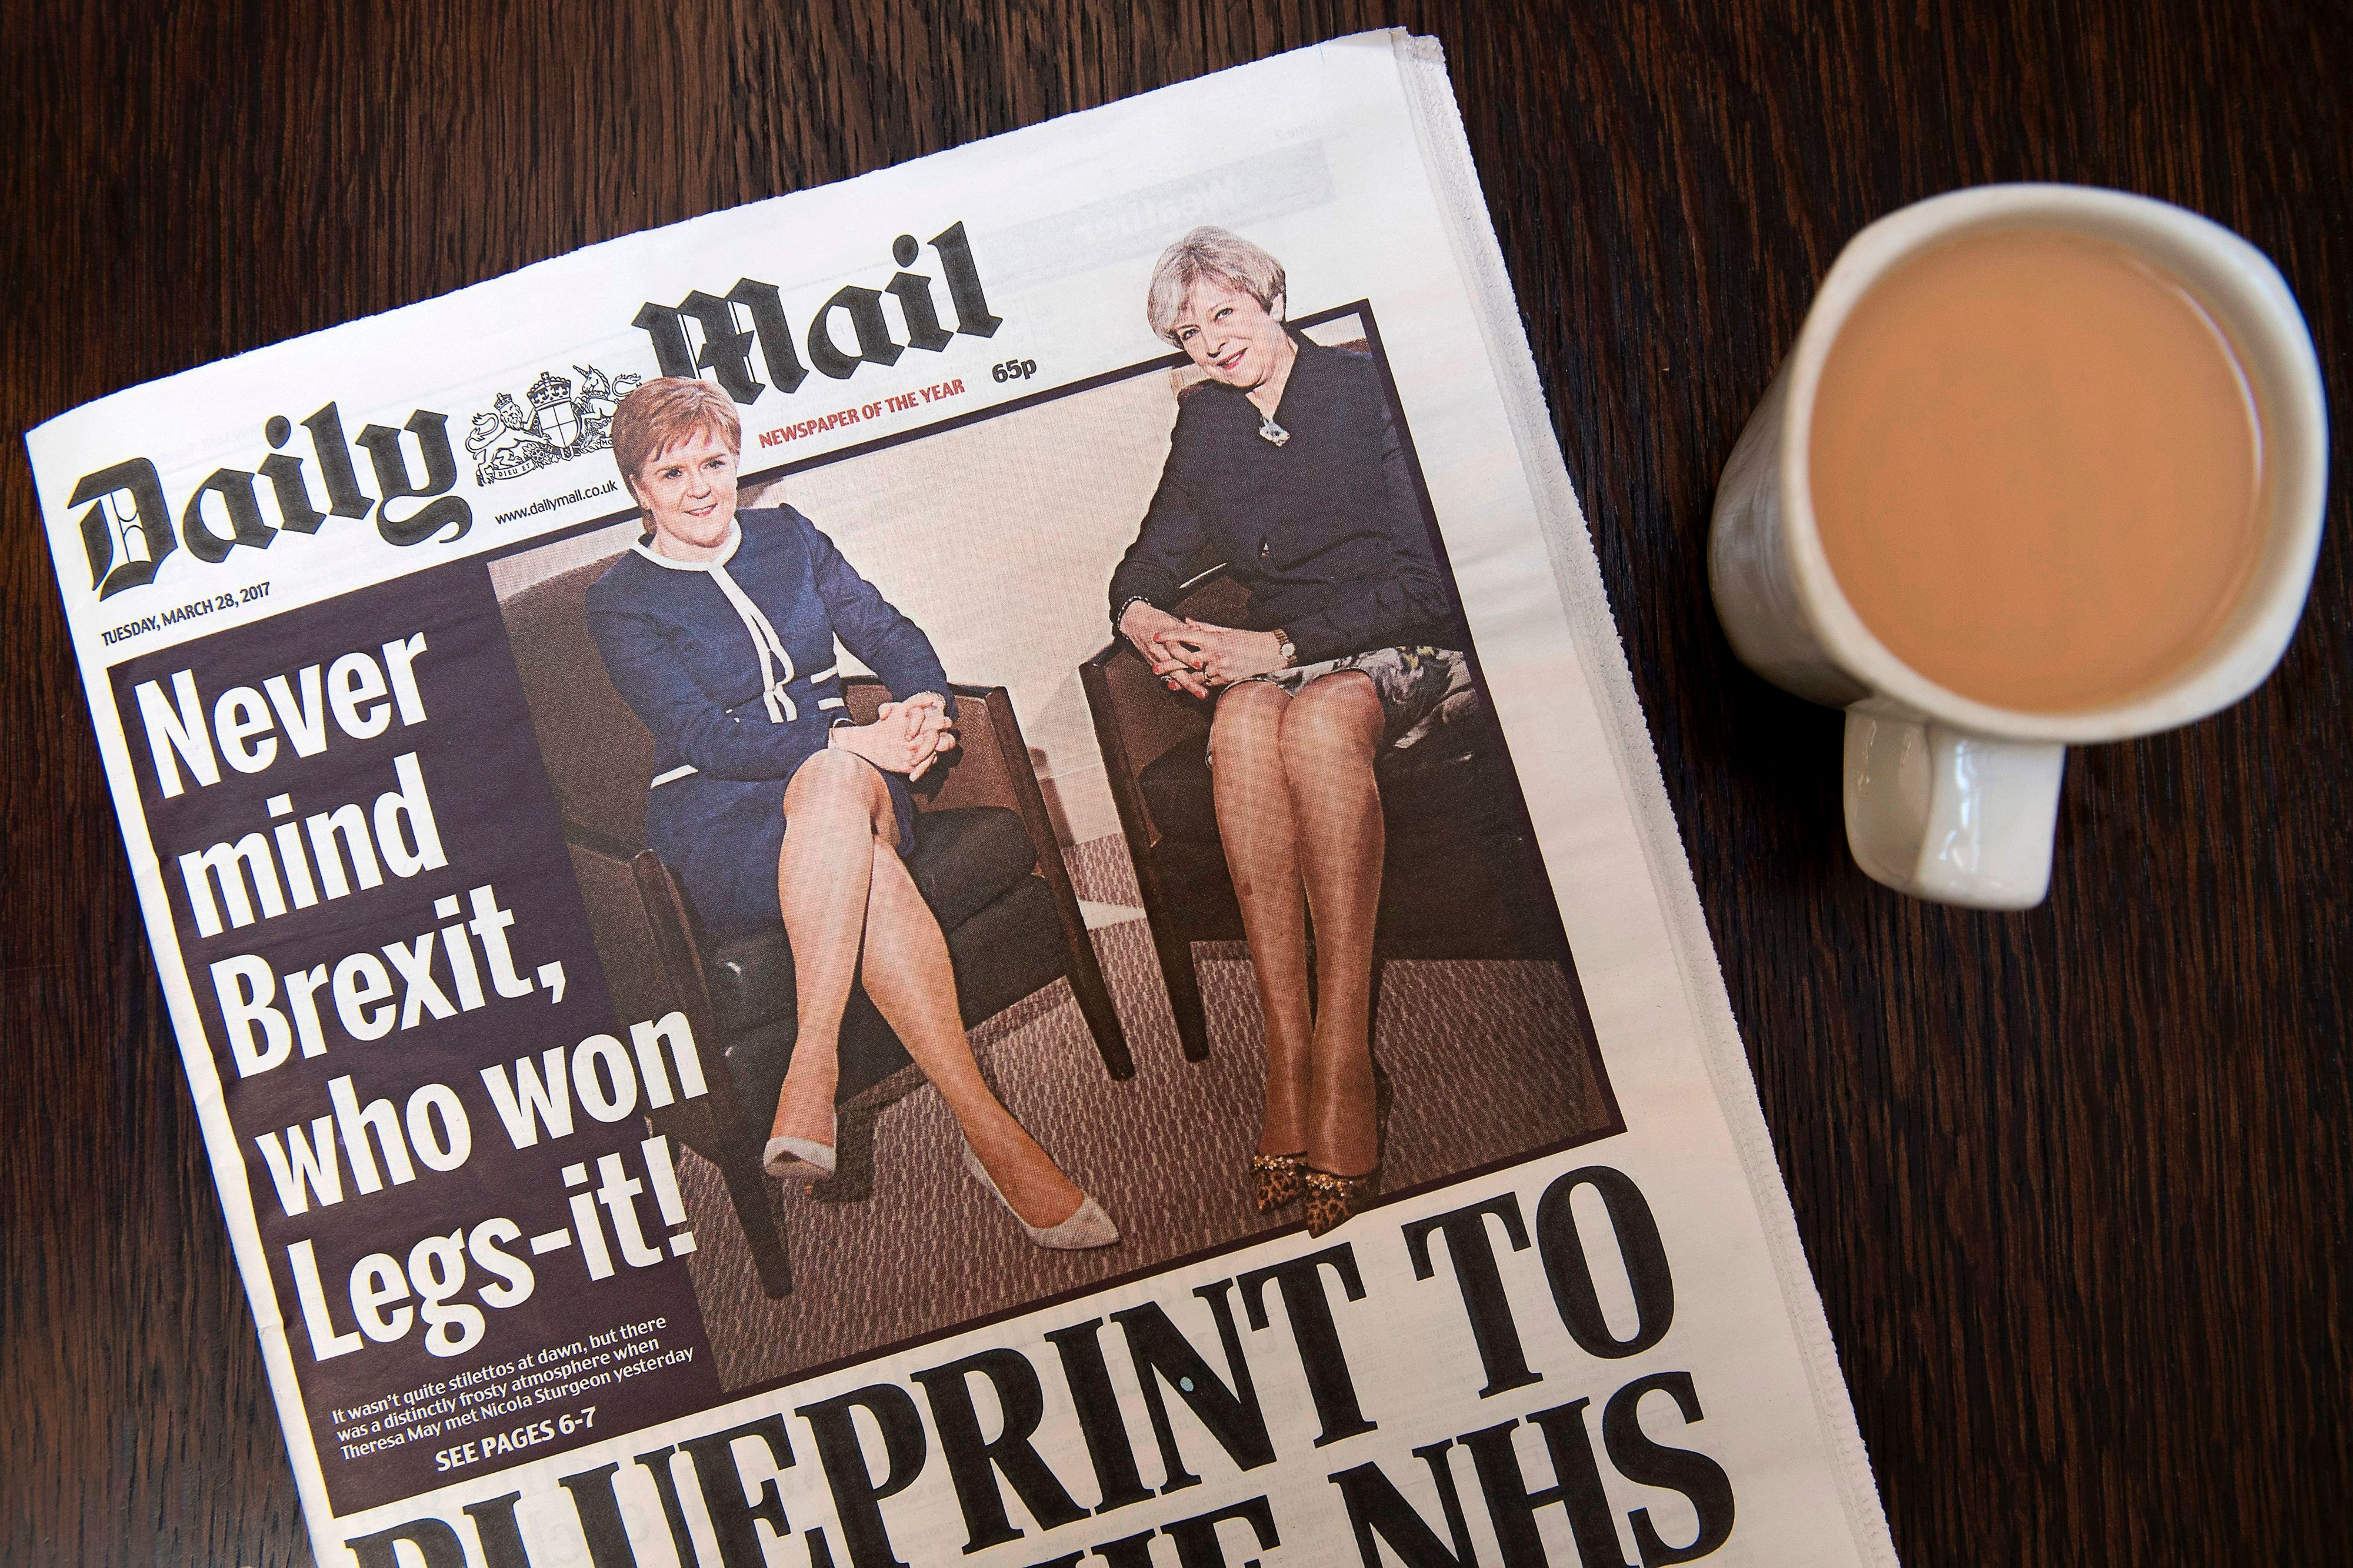 Scarcity Of Women In Newspaper Journalism Laid Bare In Startling New